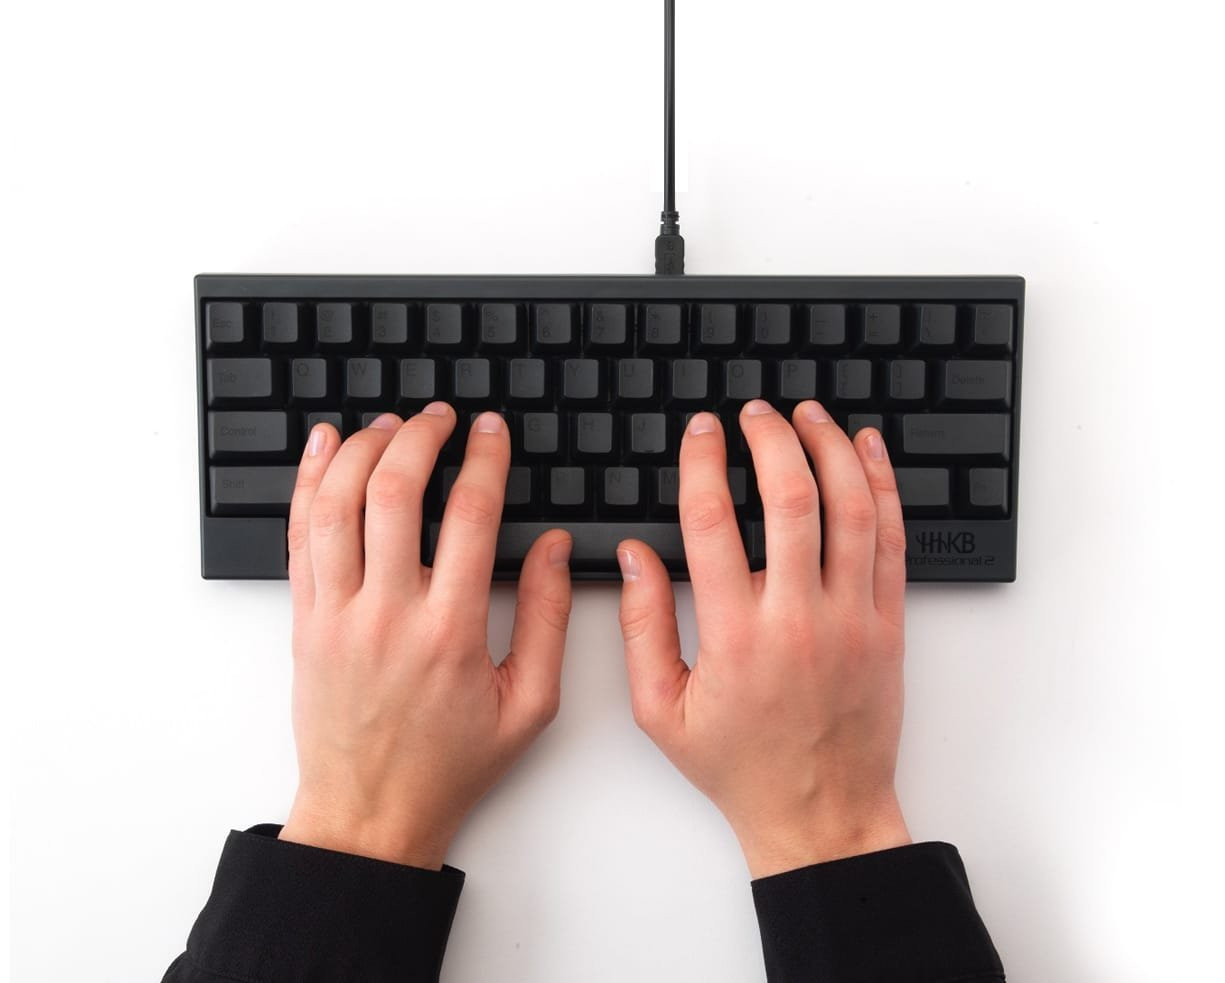 Happy Hacking Keyboard Professional2 Lands in Europe for